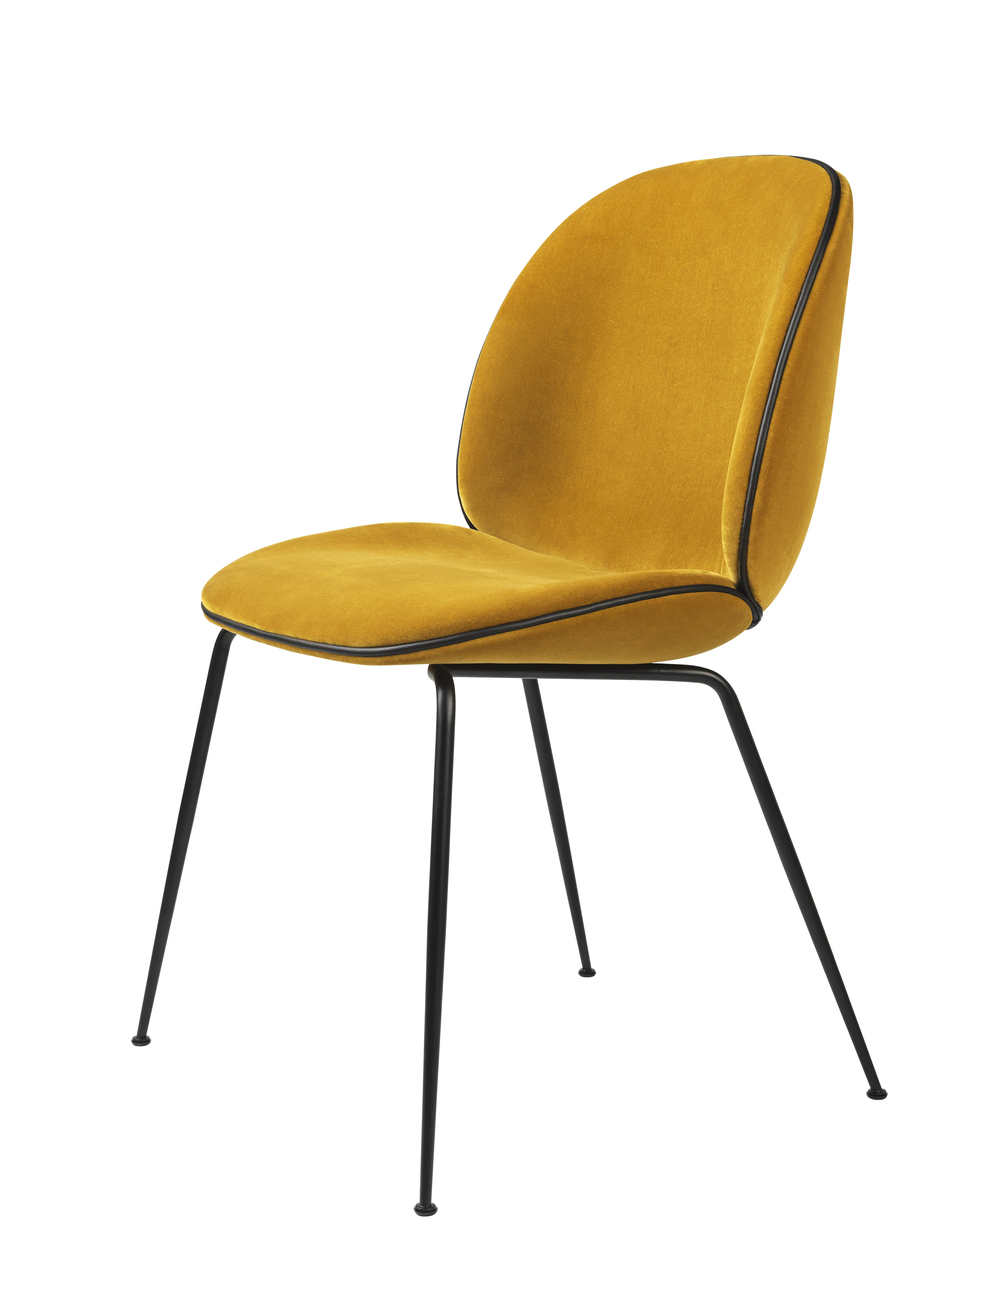 Beetle Chair_Velluto di cotone 312, yellow_black_front.jpg